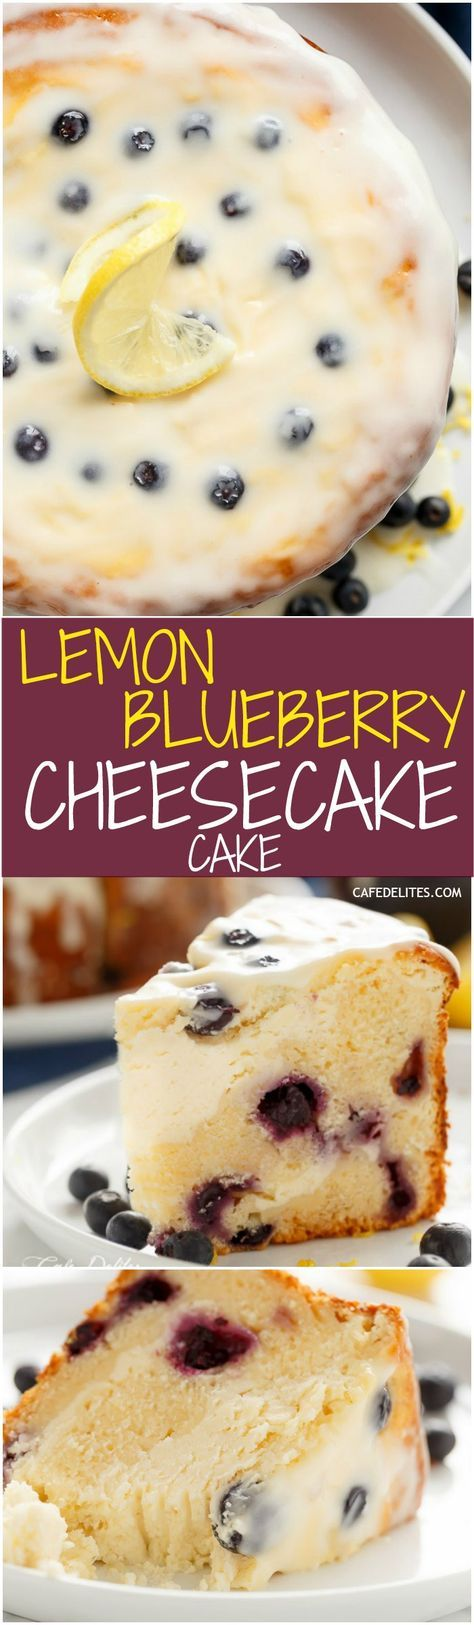 Blueberry Lemon Cheesecake Cake with a Lemon Cream Cheese Glaze to kick start your season! Baked in the one pan Easy to make with no layering!   http://cafedelites.com